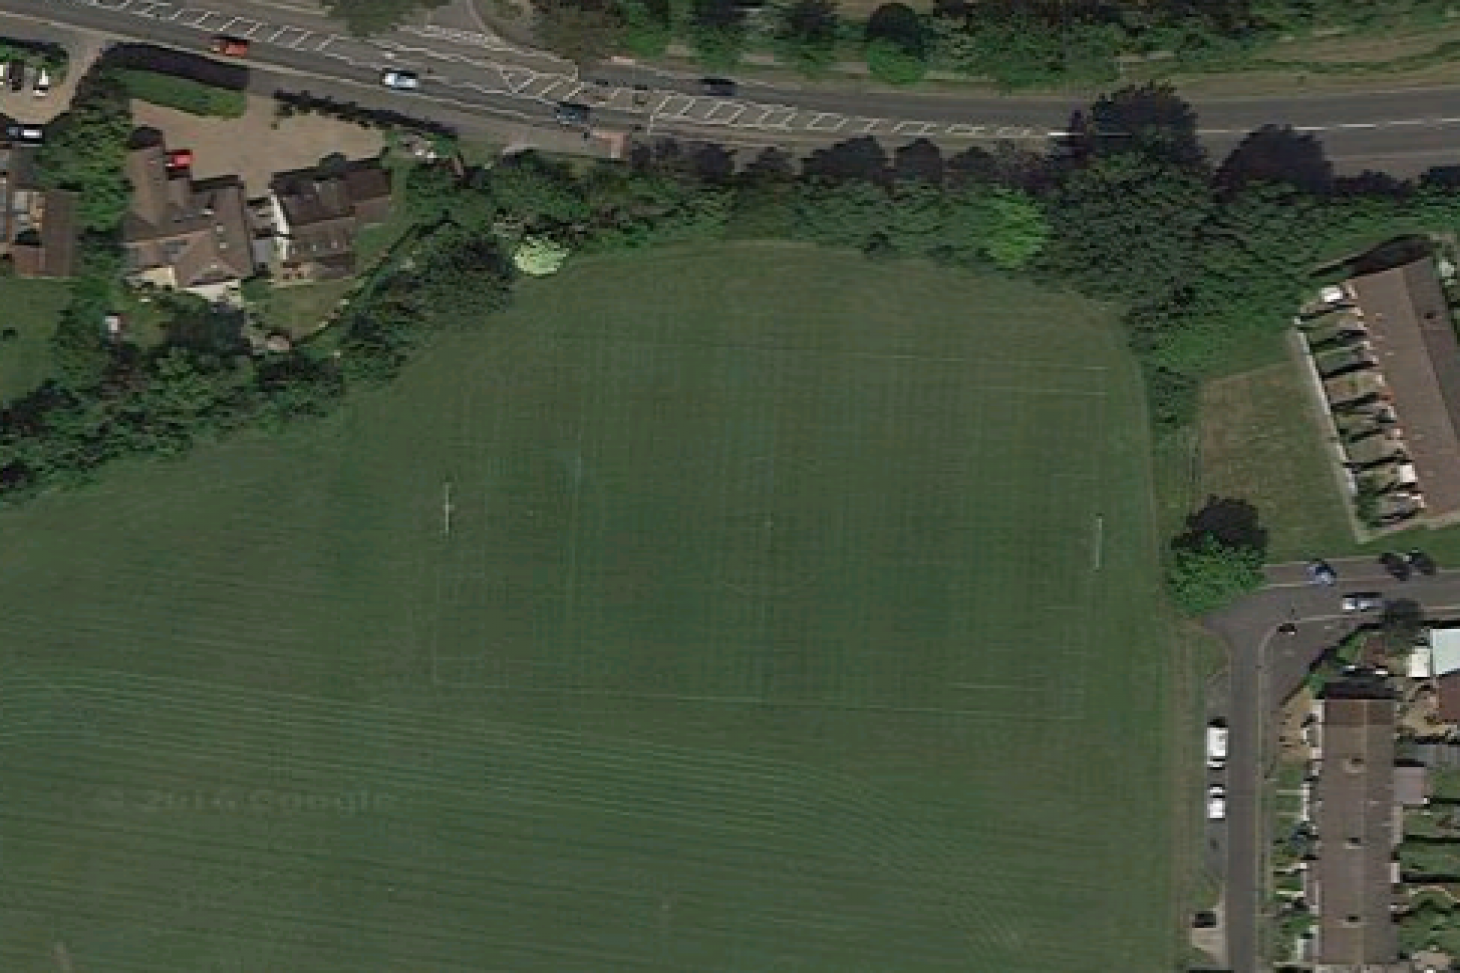 Altwood Church of England School Union | Grass rugby pitch